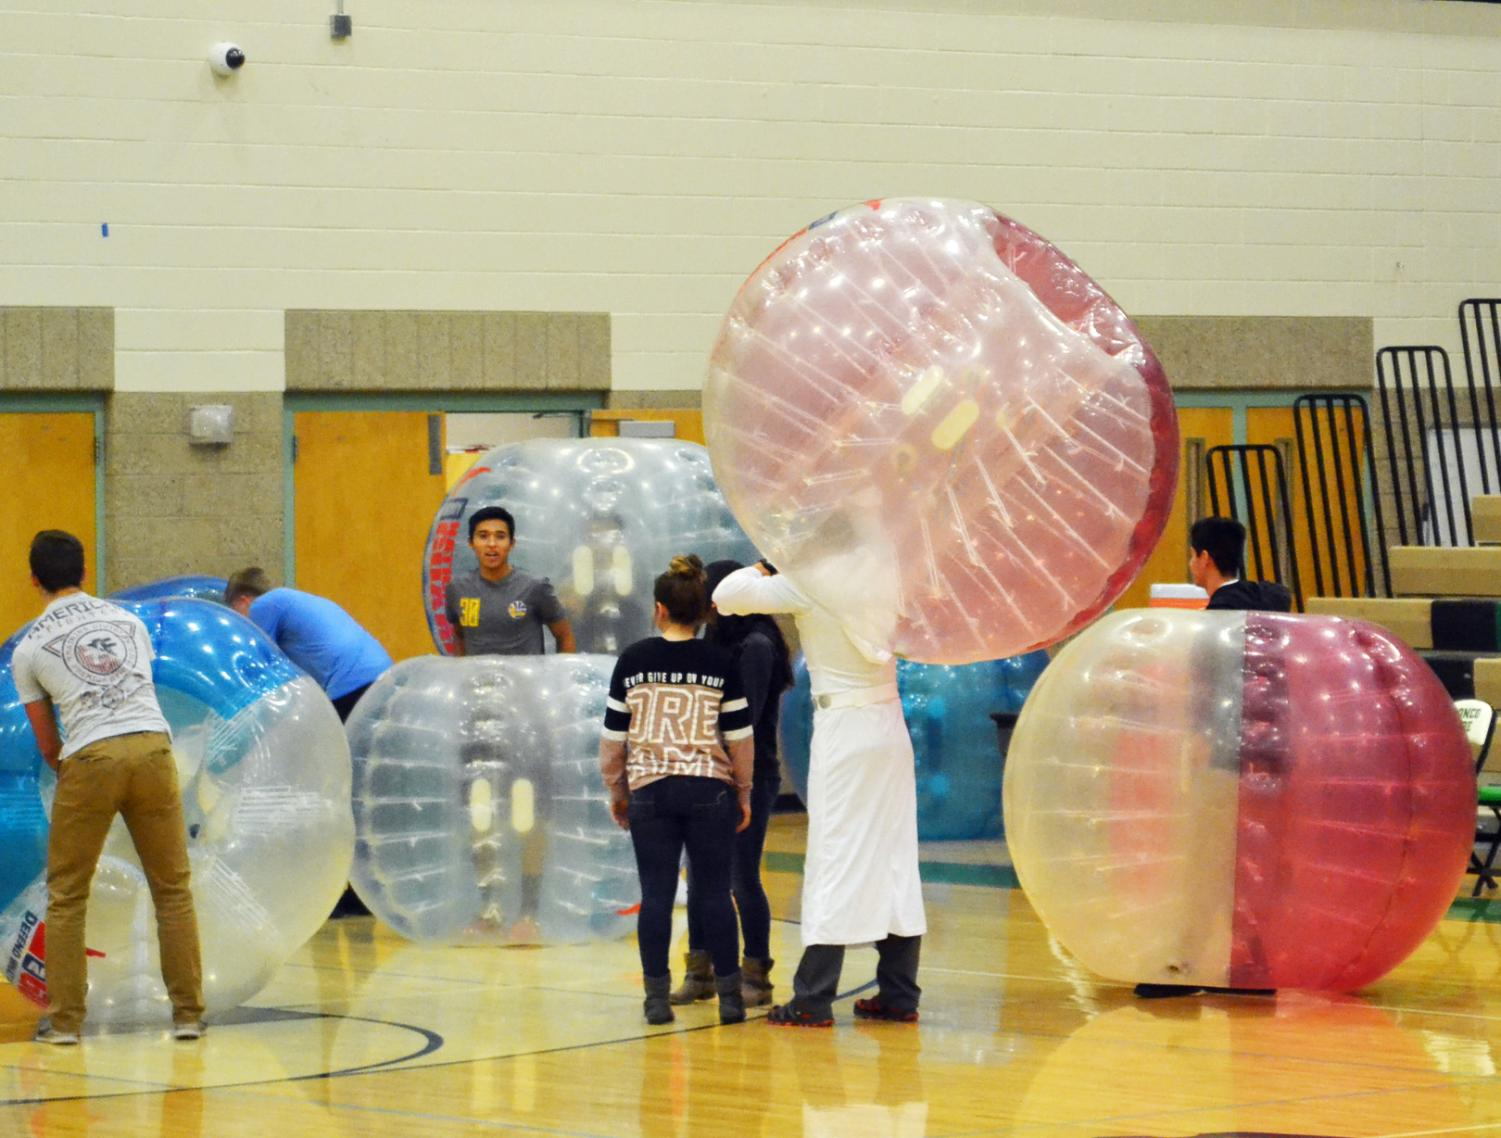 Students+are+invited+down+to+play+bubble+soccer+during+half+time+with+the+Vice+Principals.+